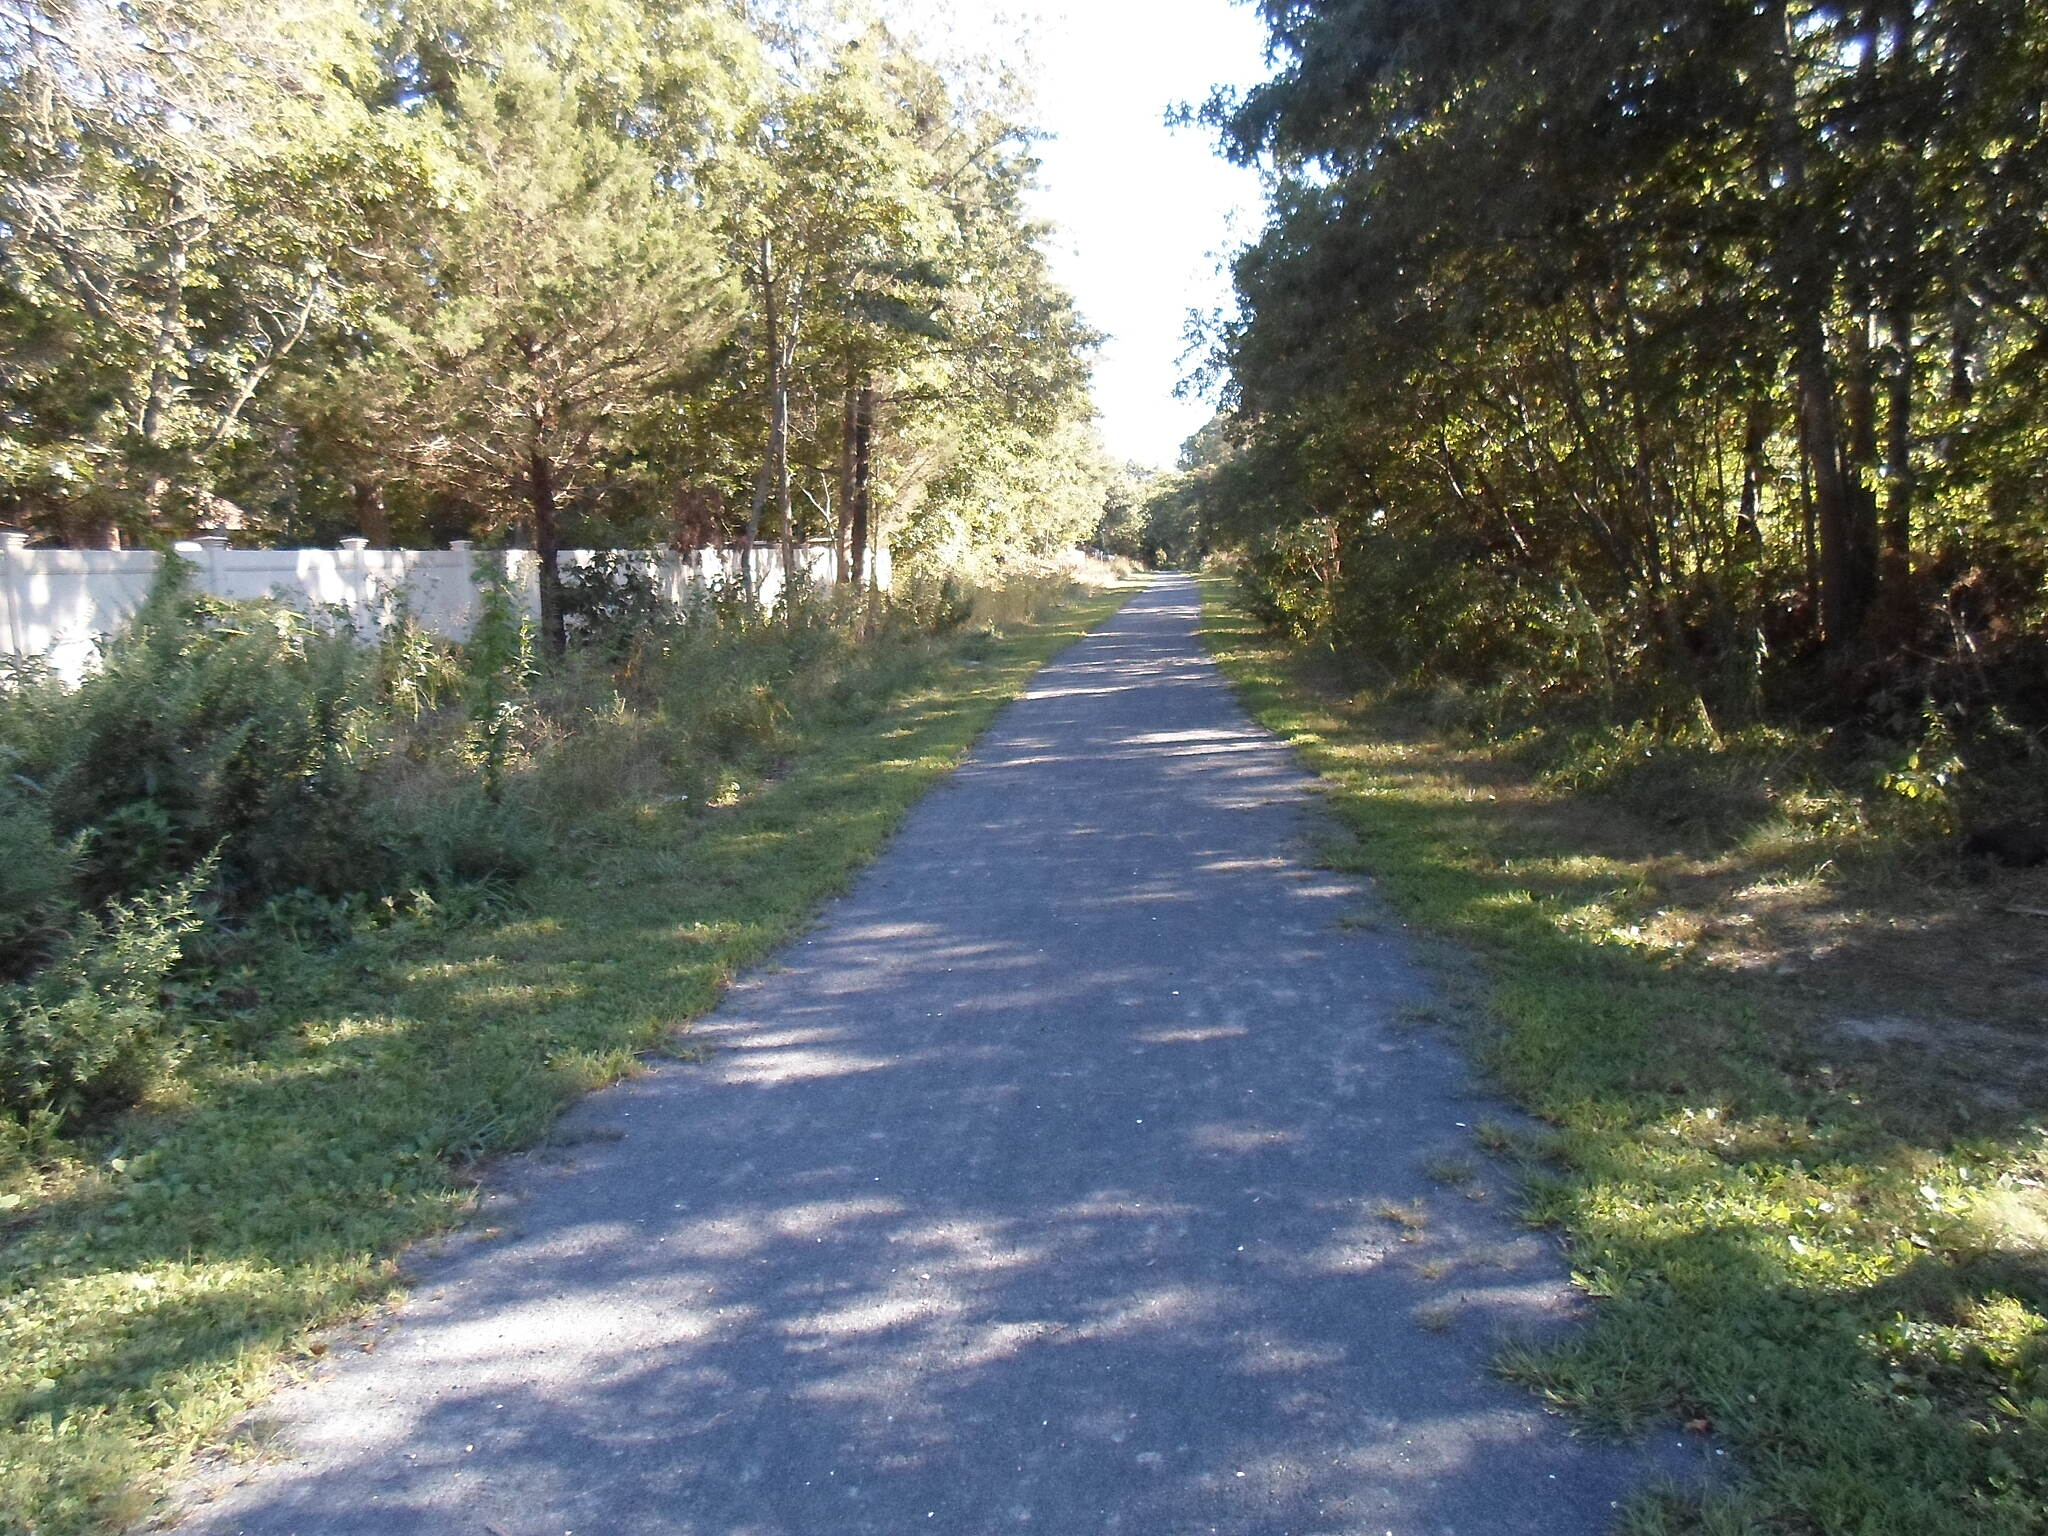 Barnegat Branch Trail Barnegat Branch Trail The Berkley (northern) section of the trail is perfectly straight. Taken September 2013.